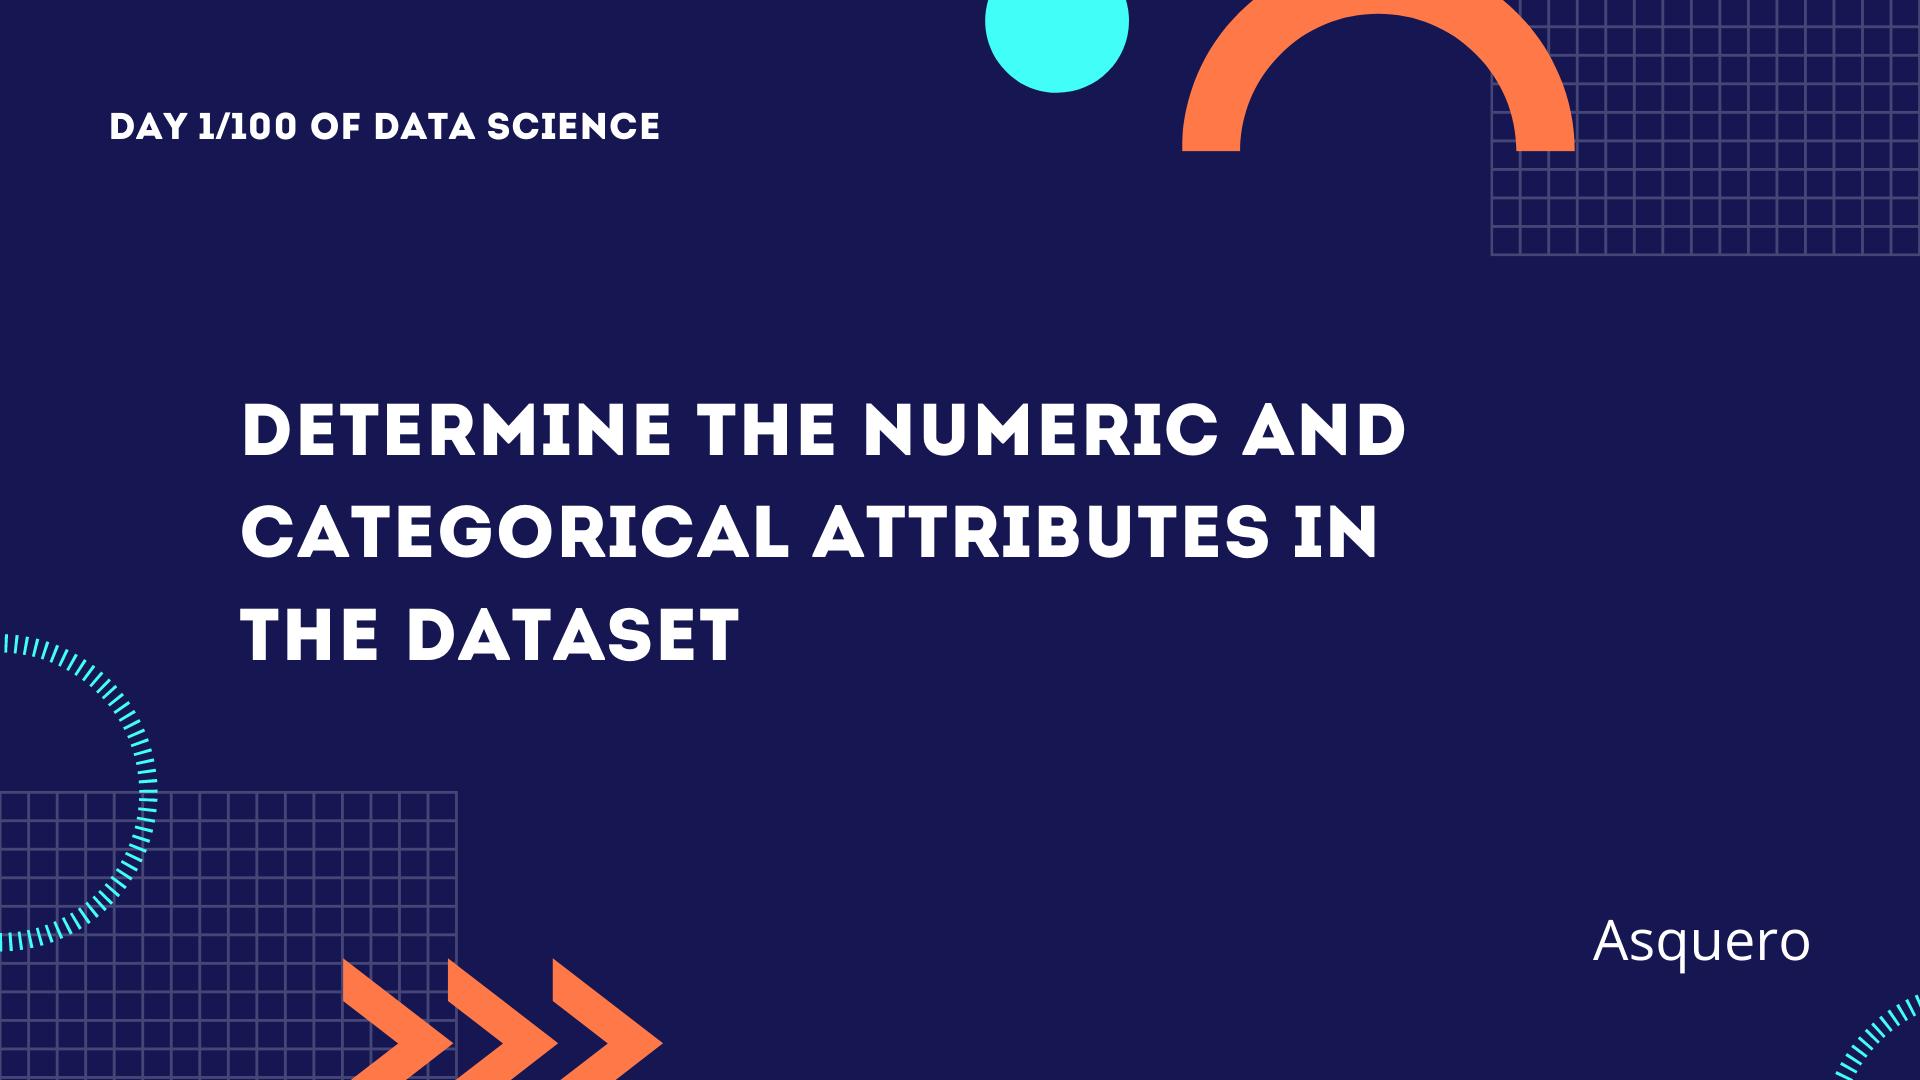 Determine the numeric and categorical attributes in thedataset